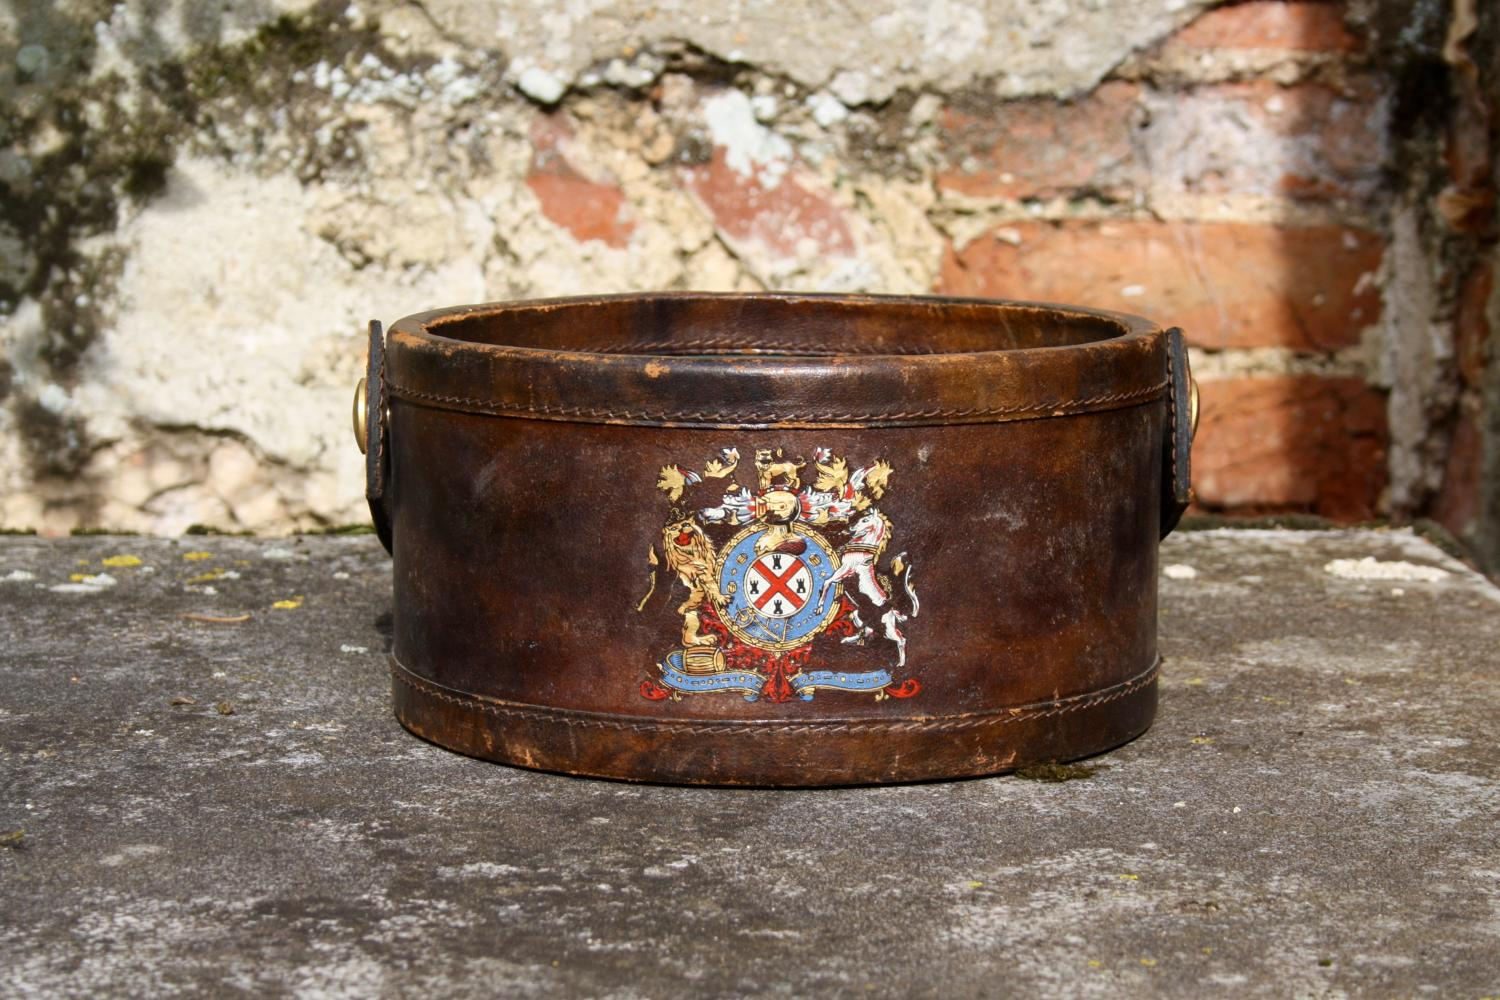 Small leather bucket with crest decoration